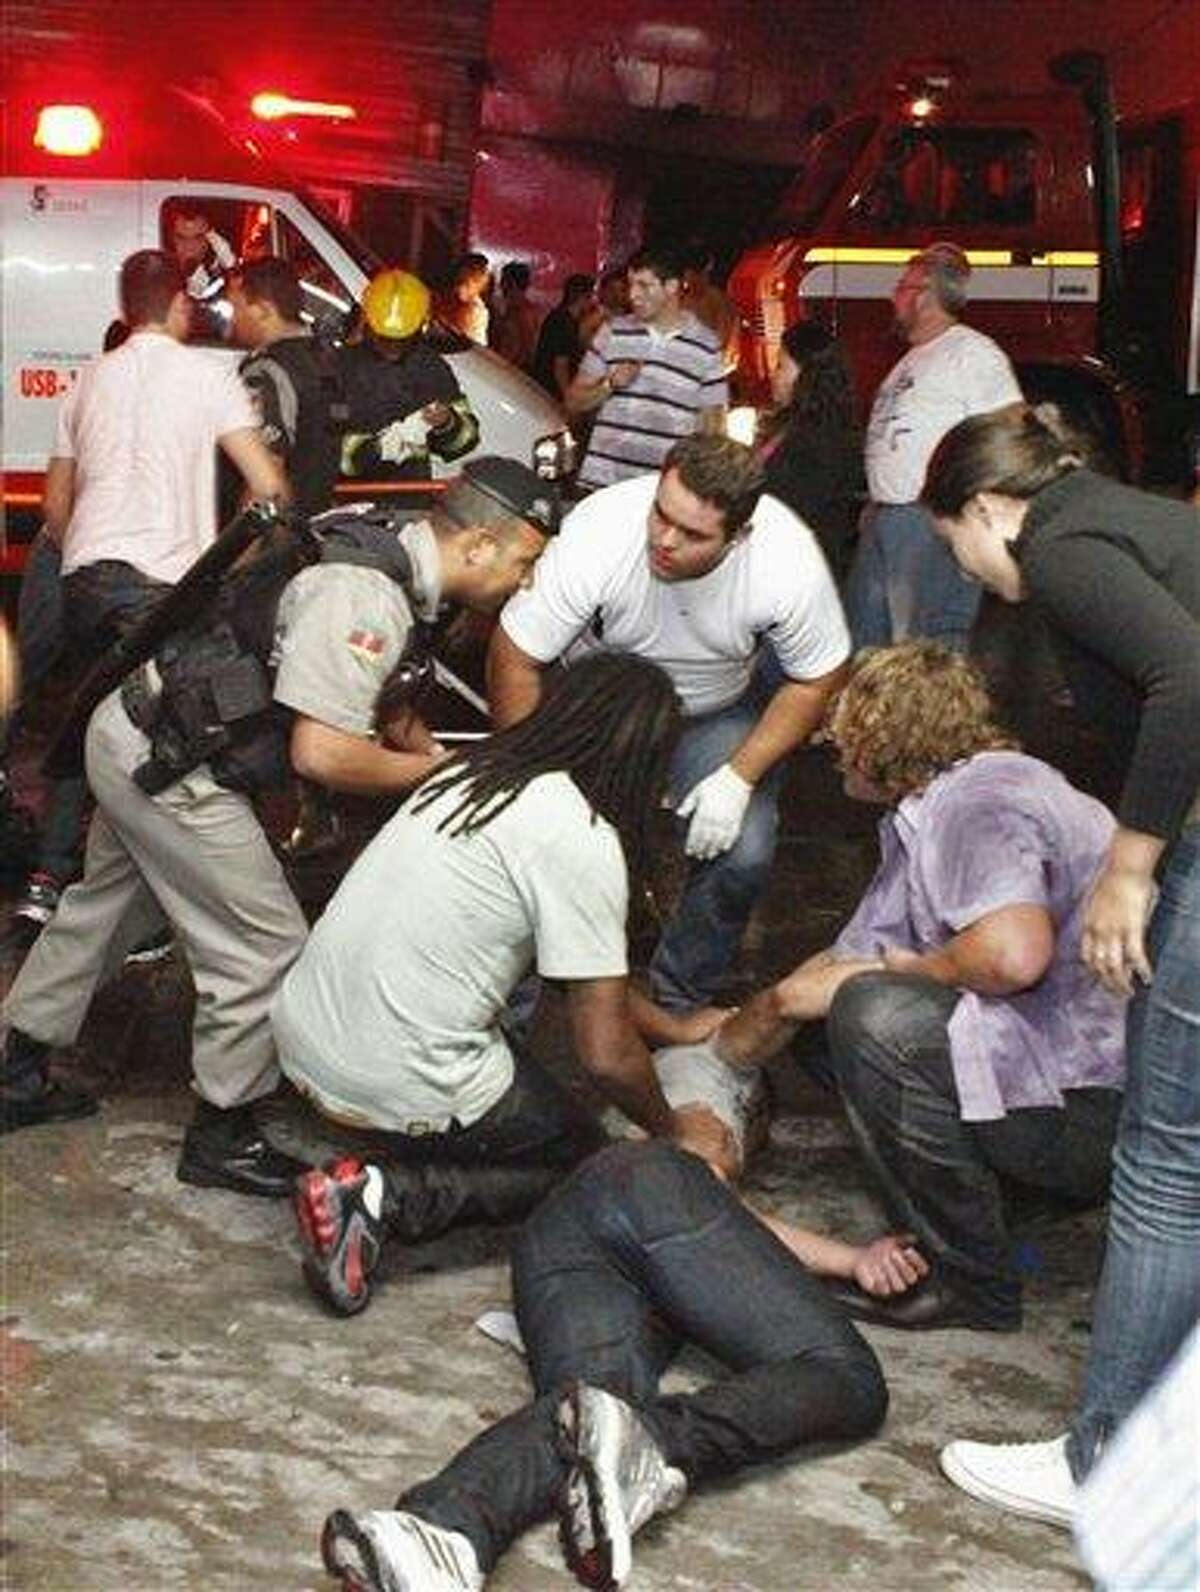 People help an injured man, victim of a fire in a club in Santa Maria city, Rio Grande do Sul state, Brazil, Sunday. According to police more than 200 died in the devastating nightclub fire in southern Brazil. Officials say the fire broke out at the Kiss club in the city of Santa Maria while a band was performing. At least 200 people were also injured. AP Photo/Agencia